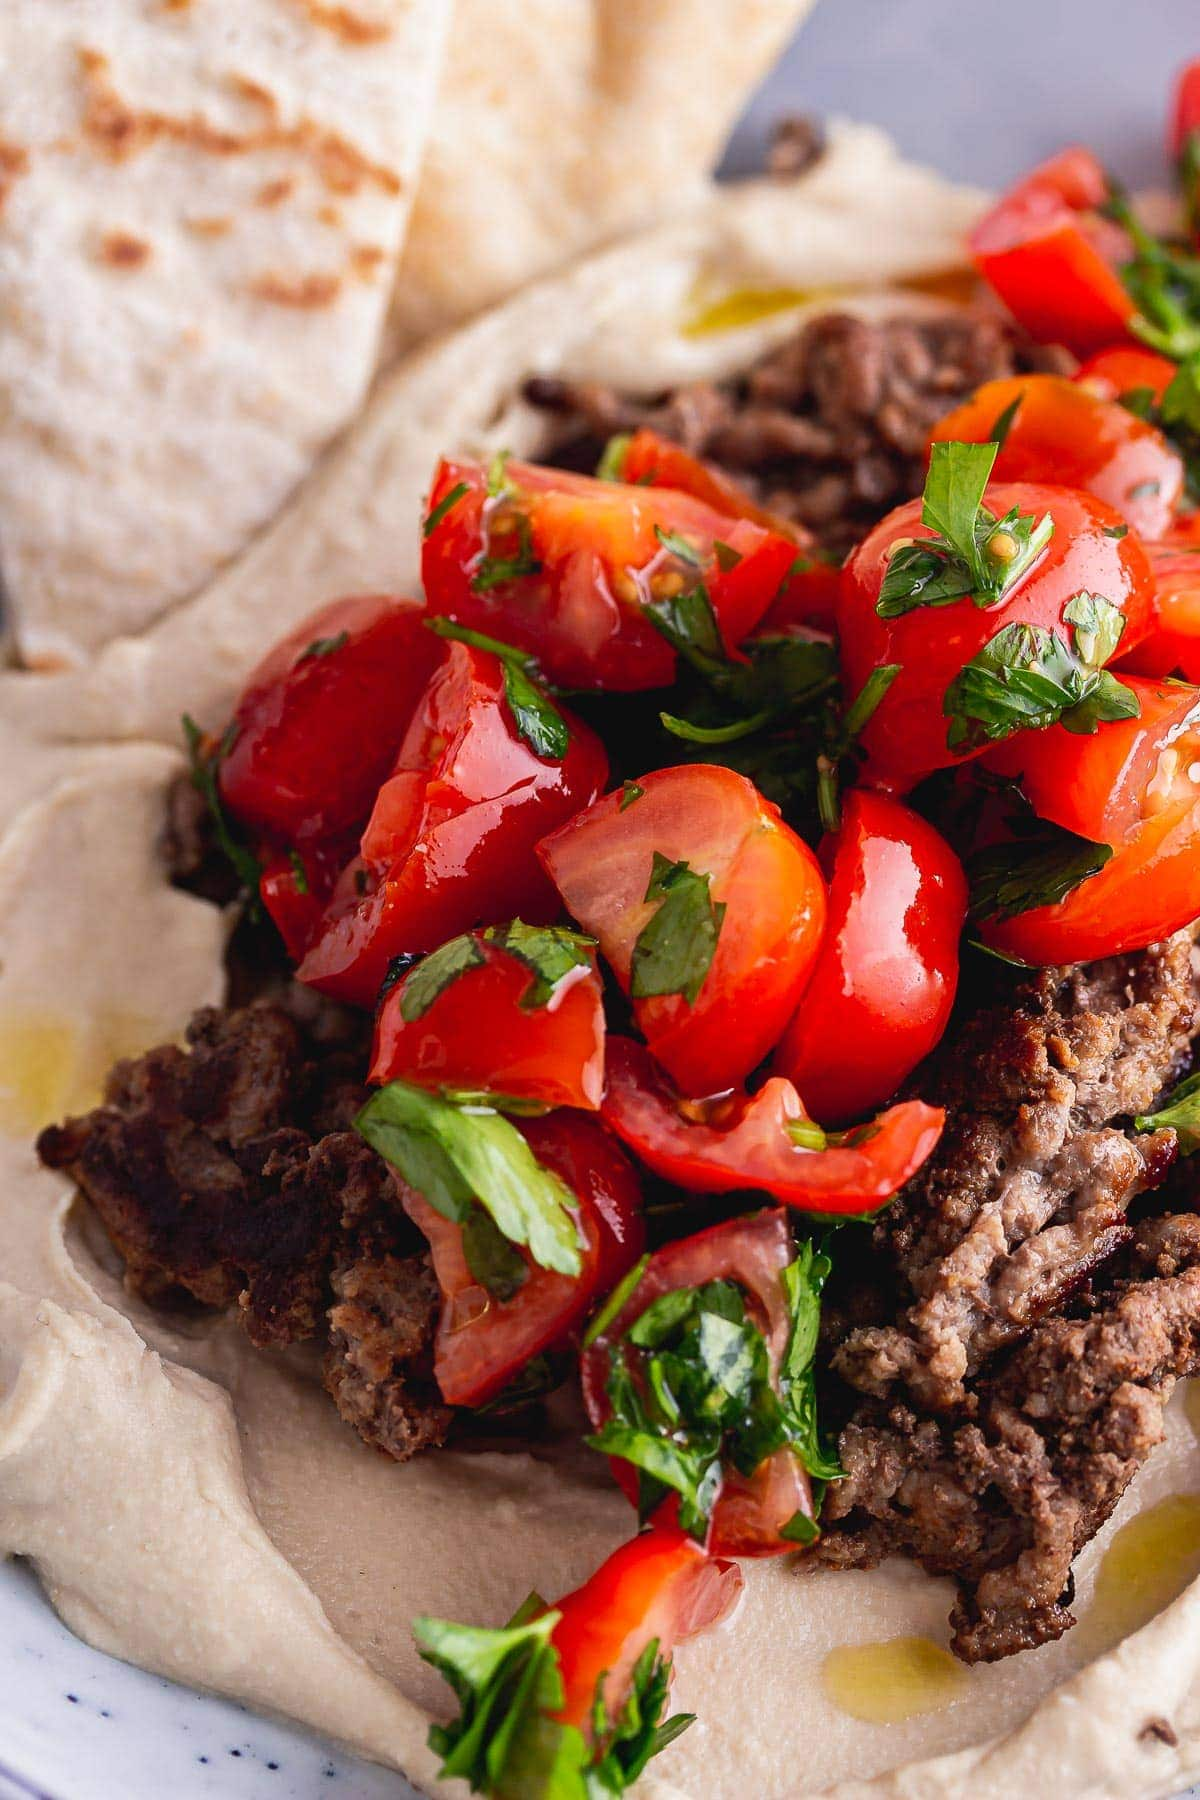 Close up of tomatoes on beef and hummus